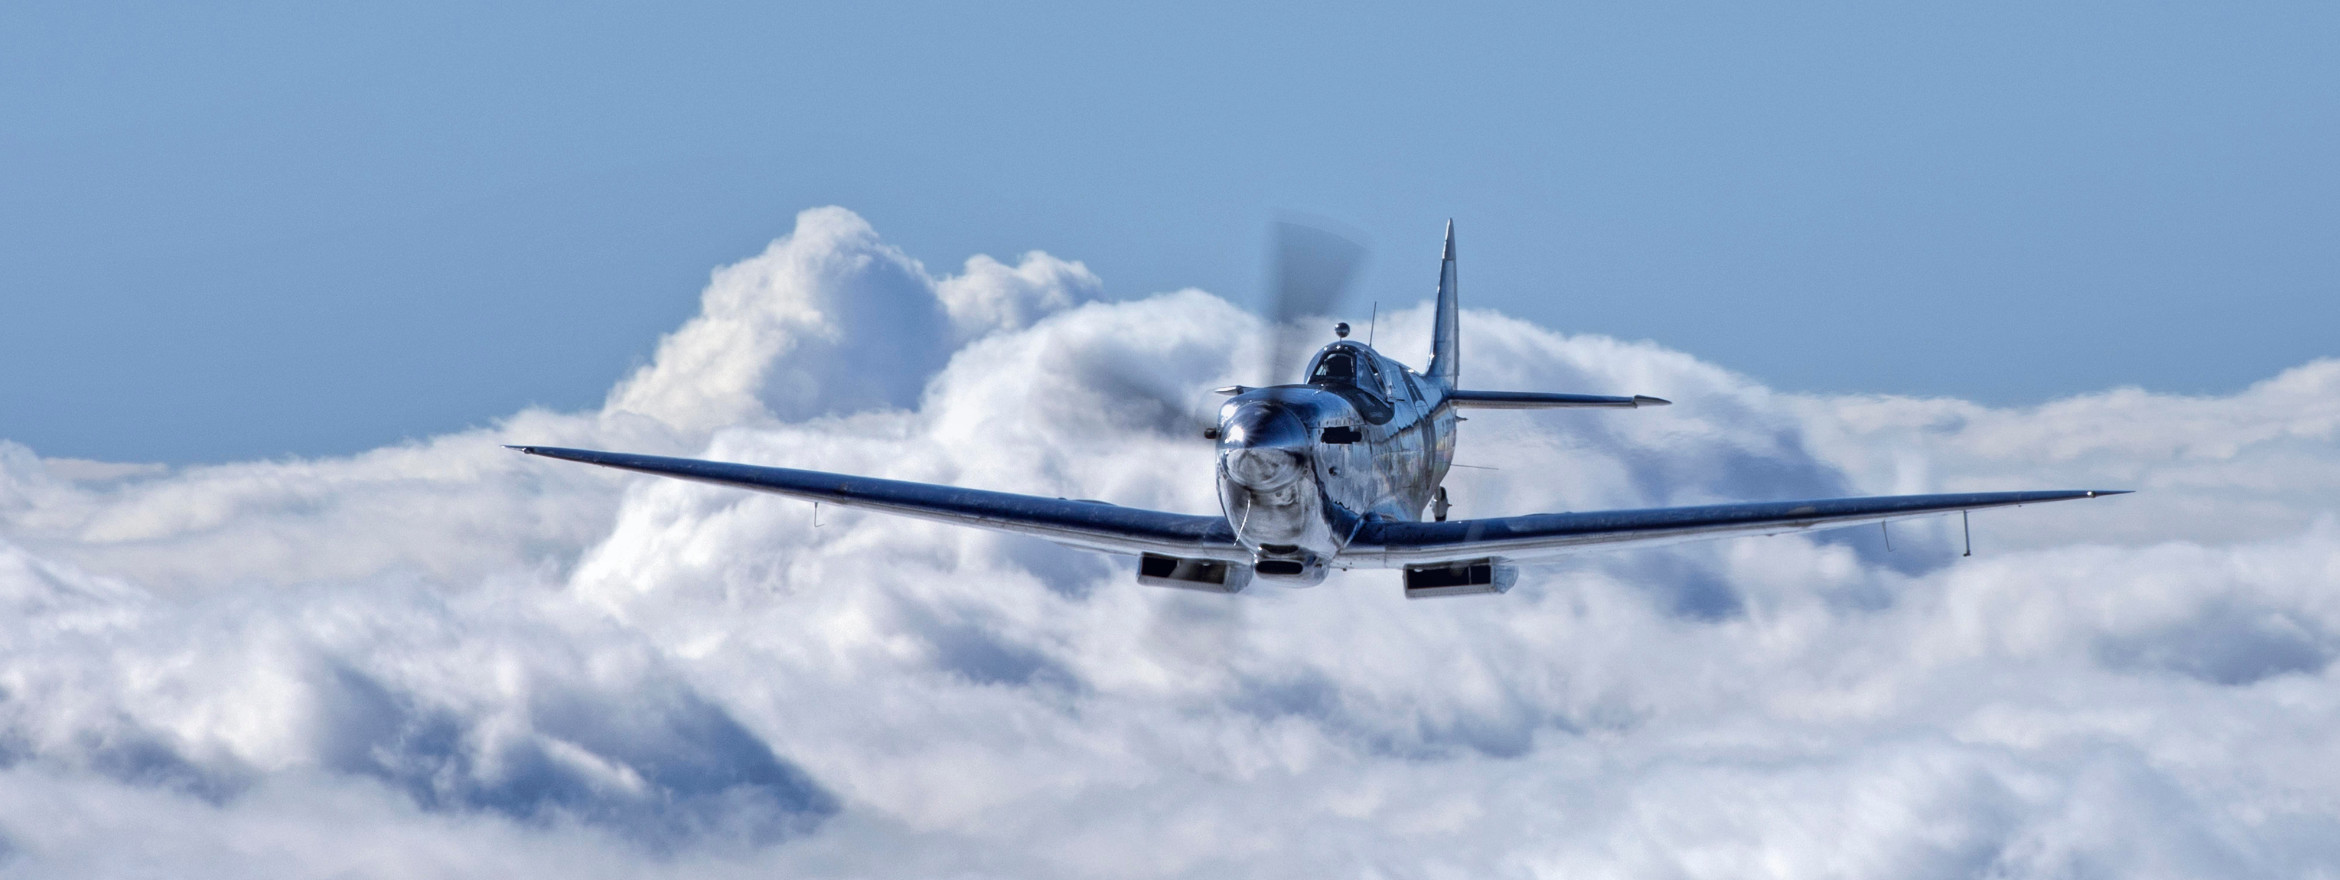 The IWC Spitfire Takes Off for The Longest Flight - The Hour